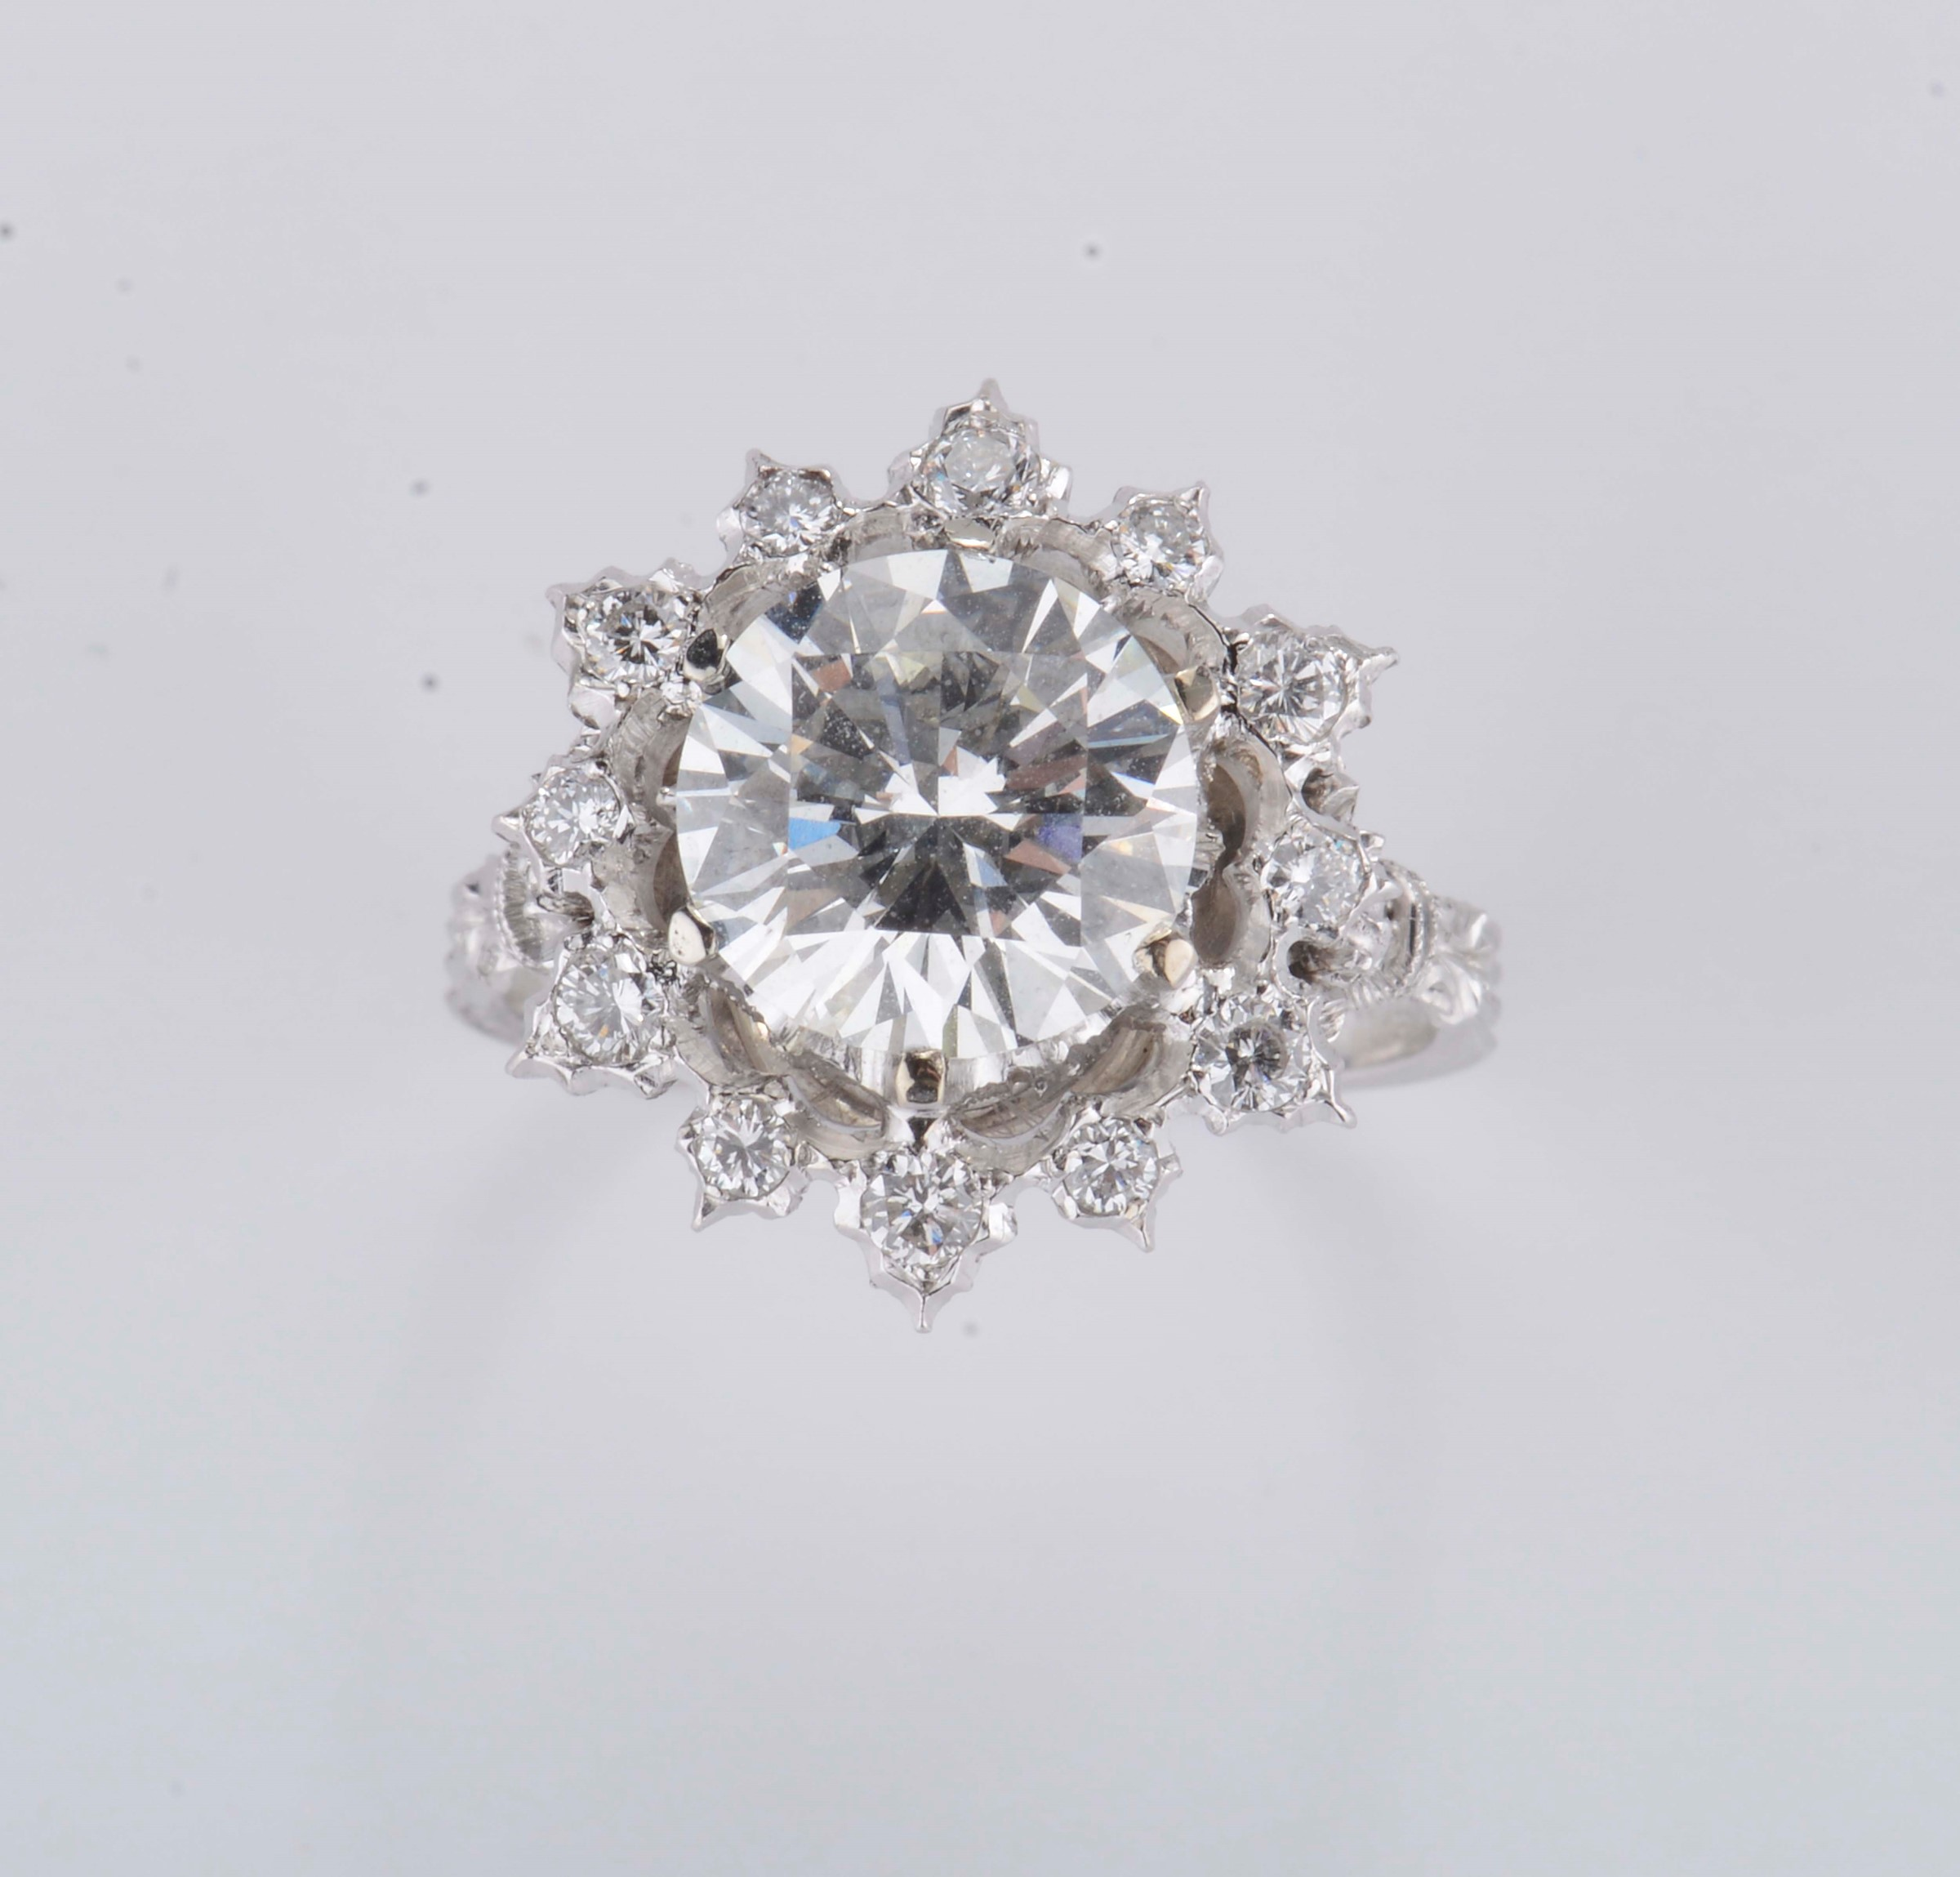 Buccellati. Diamond ring. A diamond weighing 3,02 carats